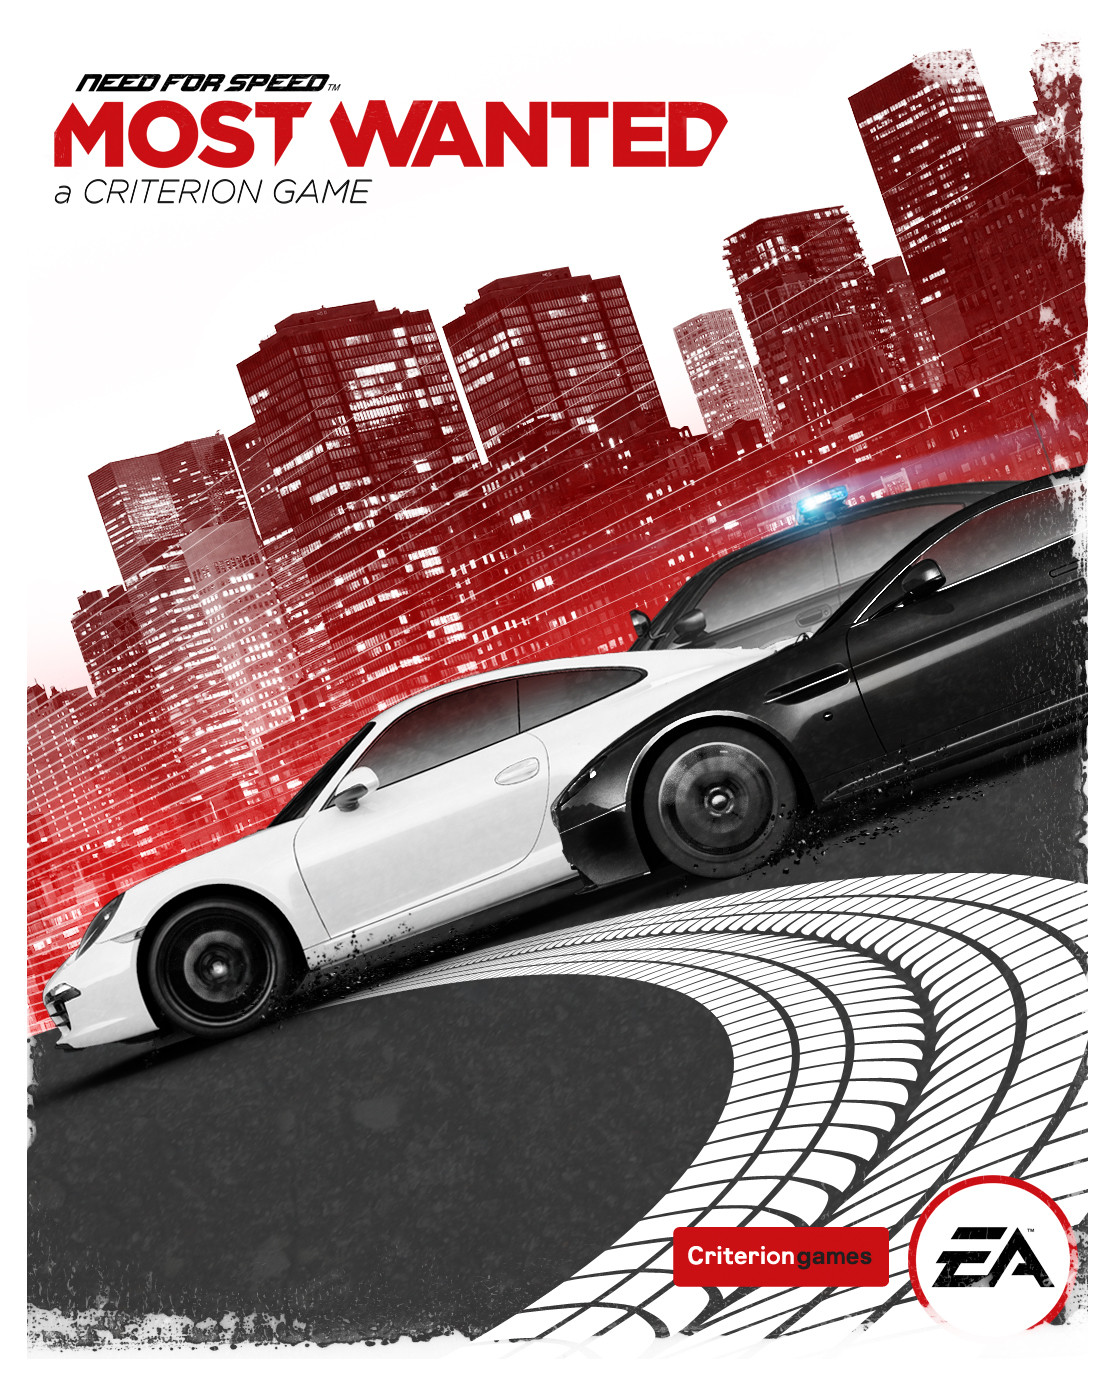 Need for Speed Most Wanted 2012 (Comprar Buy